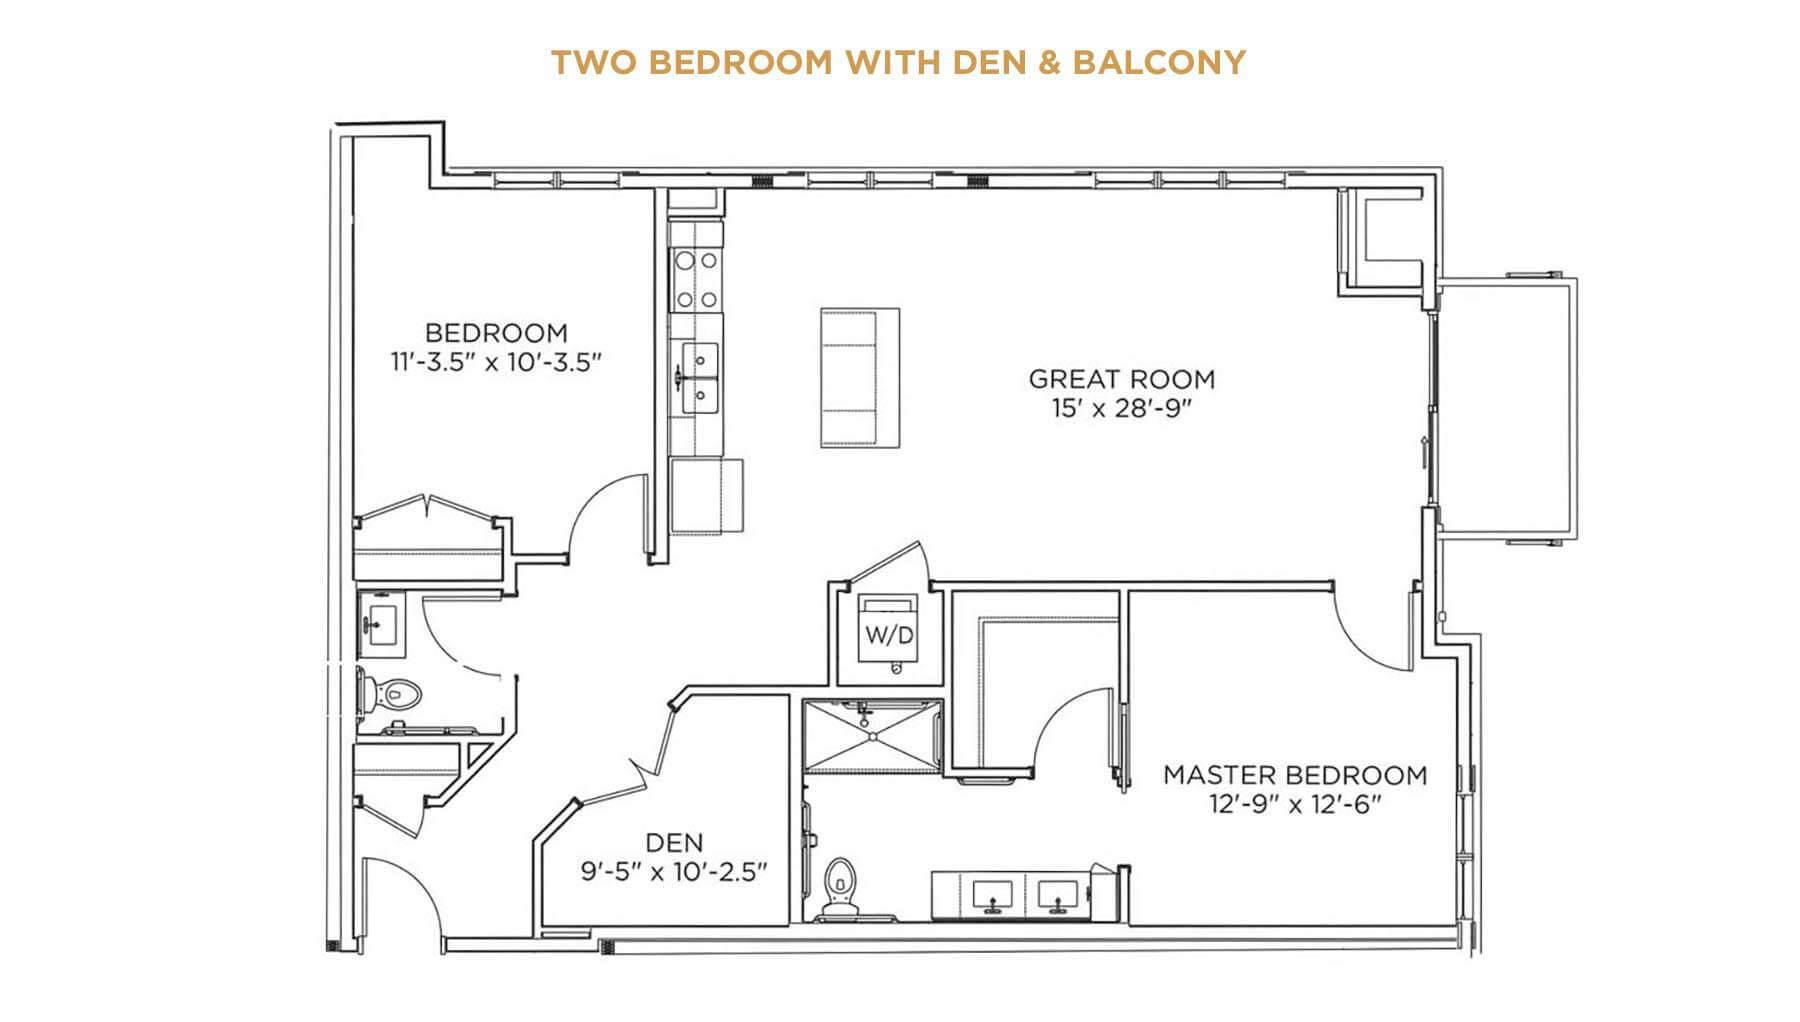 Two Bedroom with Den and Balcony Floor Plan - Senior Living Near Me - Grand Living at Indian Creek